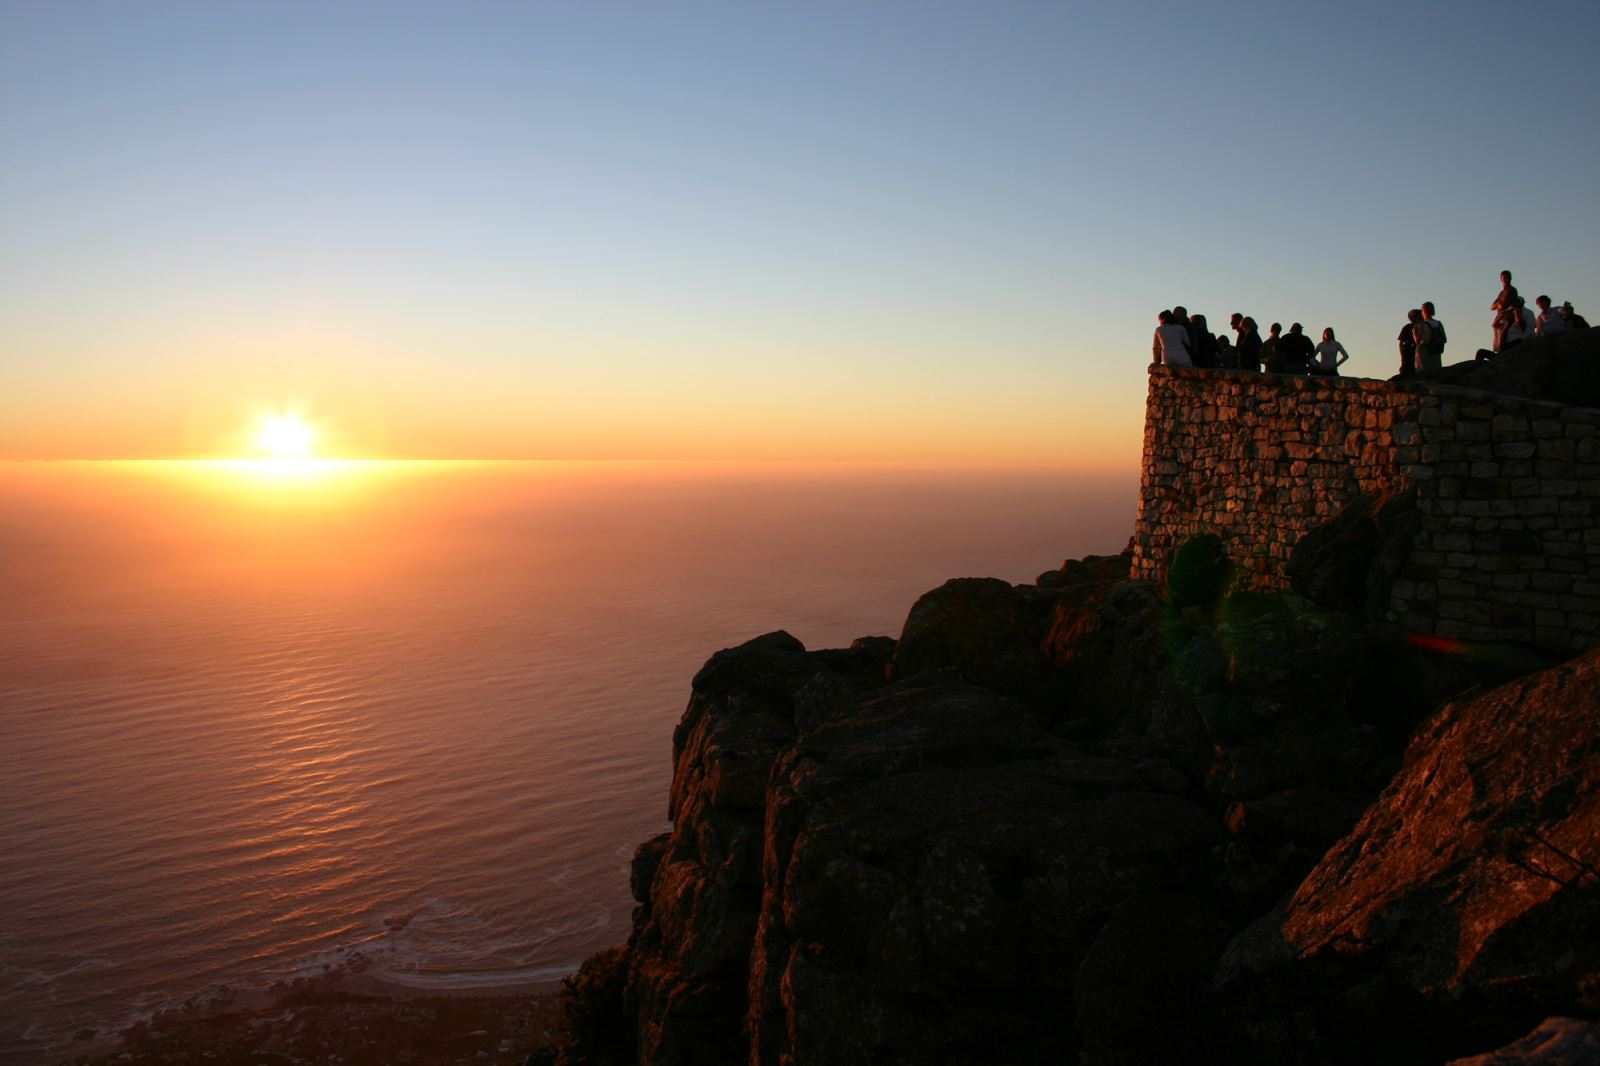 Waiting_Sunset_Table_Mountain_Cape_Town_South_Africa_Luca_Galuzzi